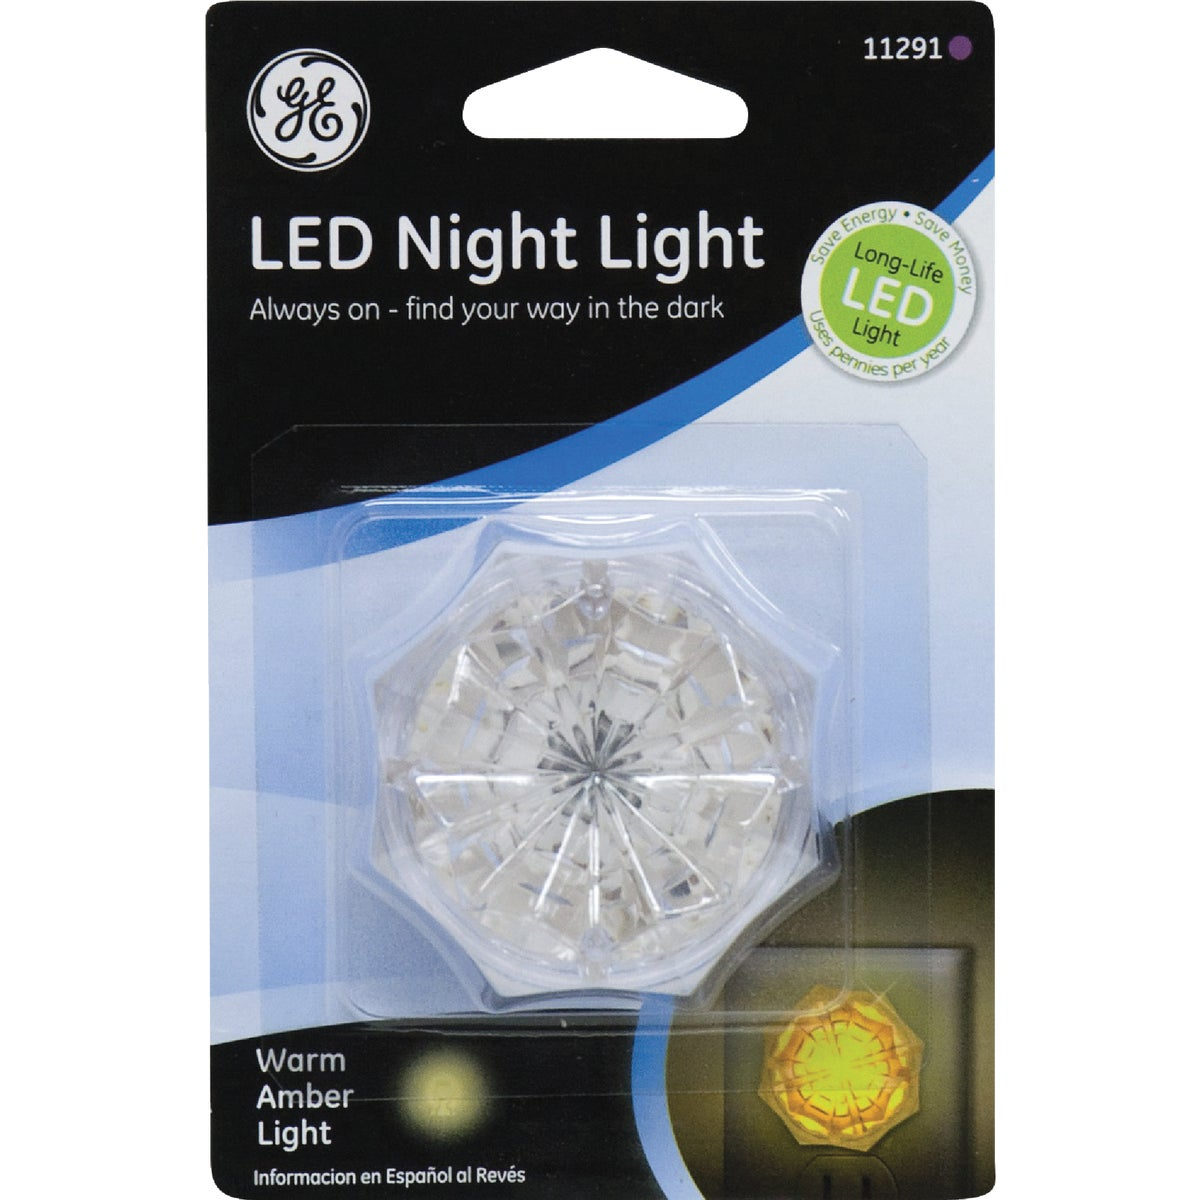 LED JEWEL NIGHT LIGHT - 11291 by Jasco Products Co